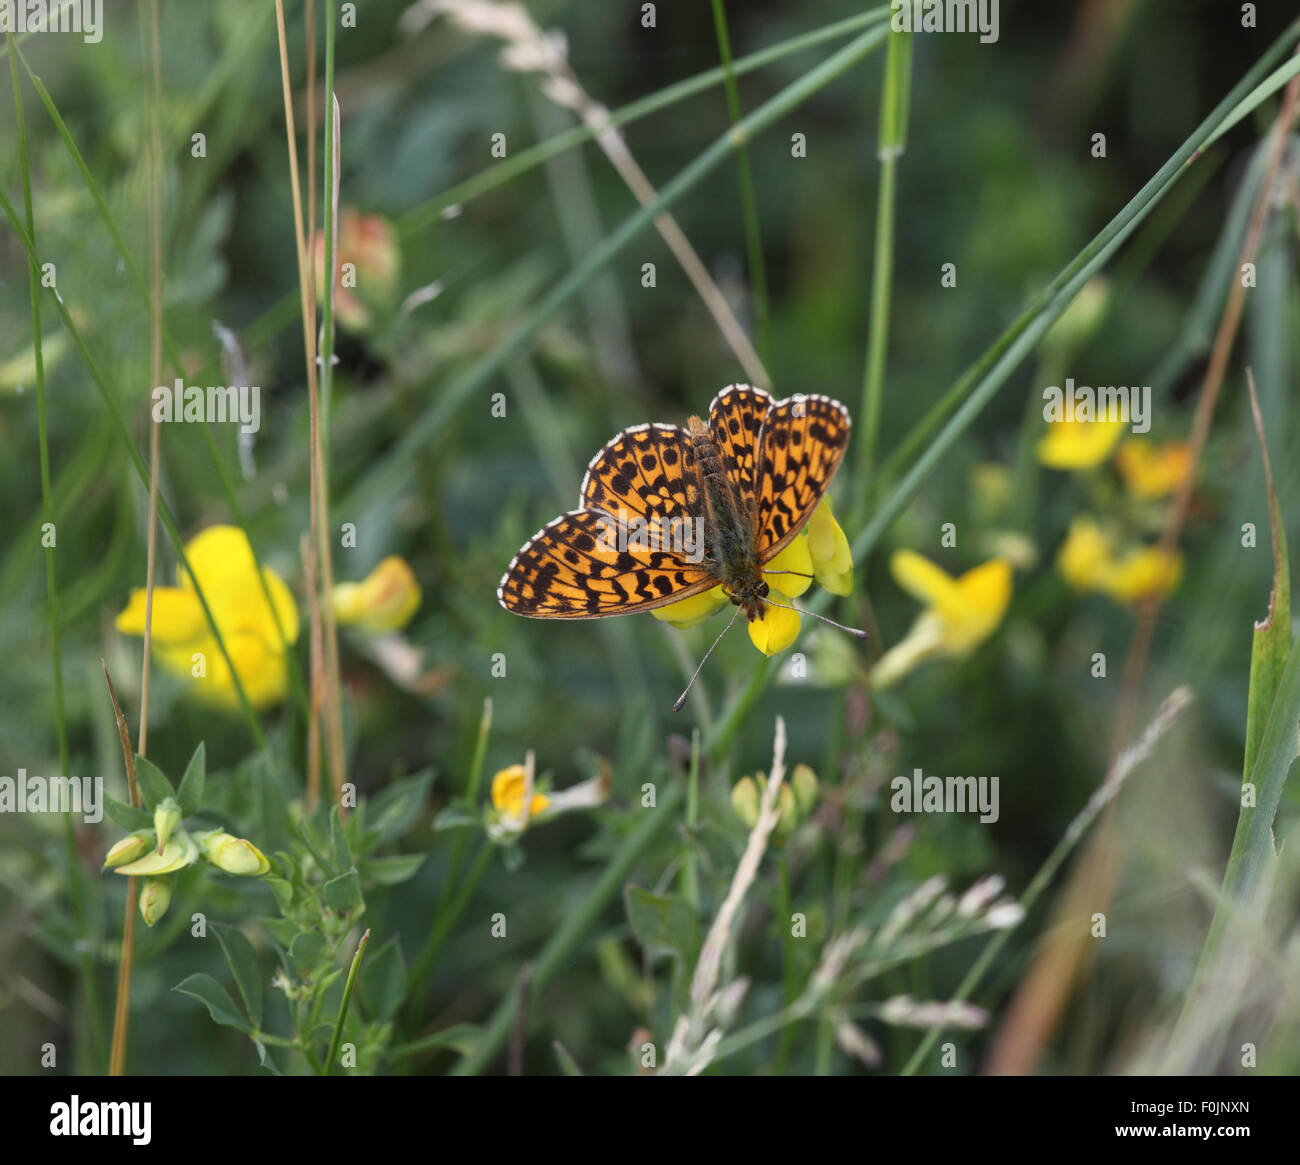 Marbled fritillary Brenthis daphne feeding on vetch - Stock Image